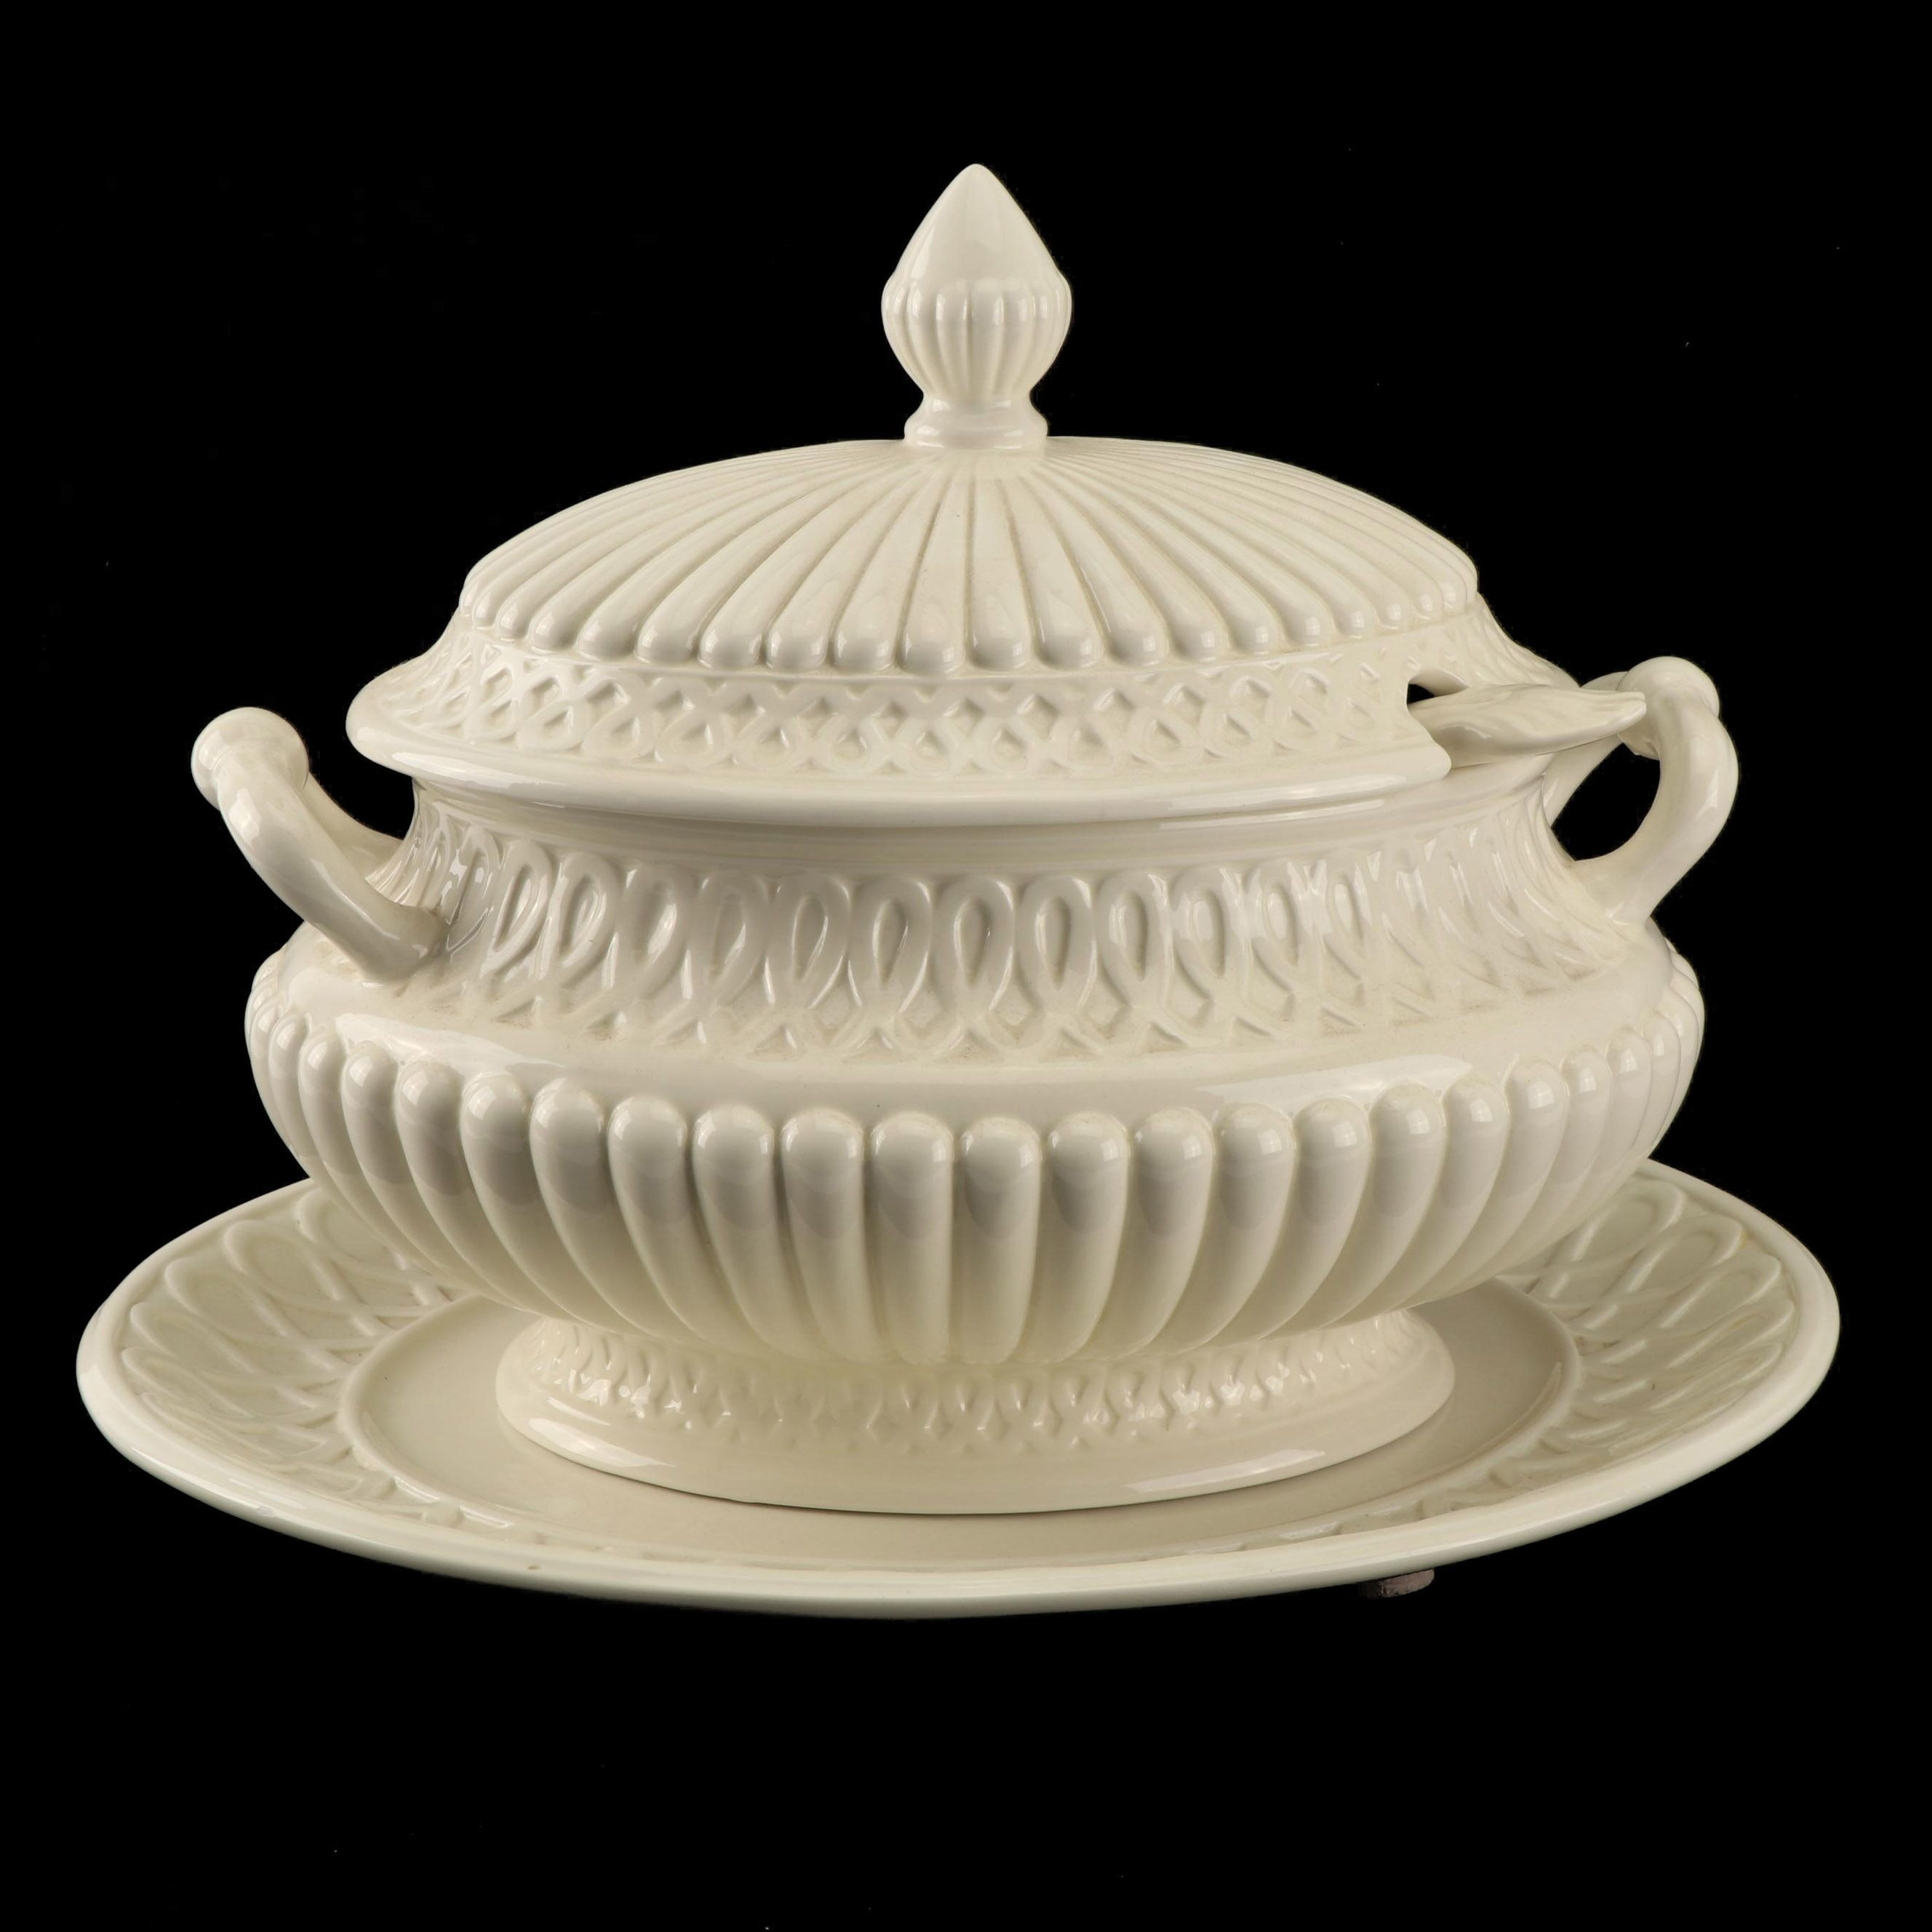 Creamware Soup Tureen With Underplate and Ladle